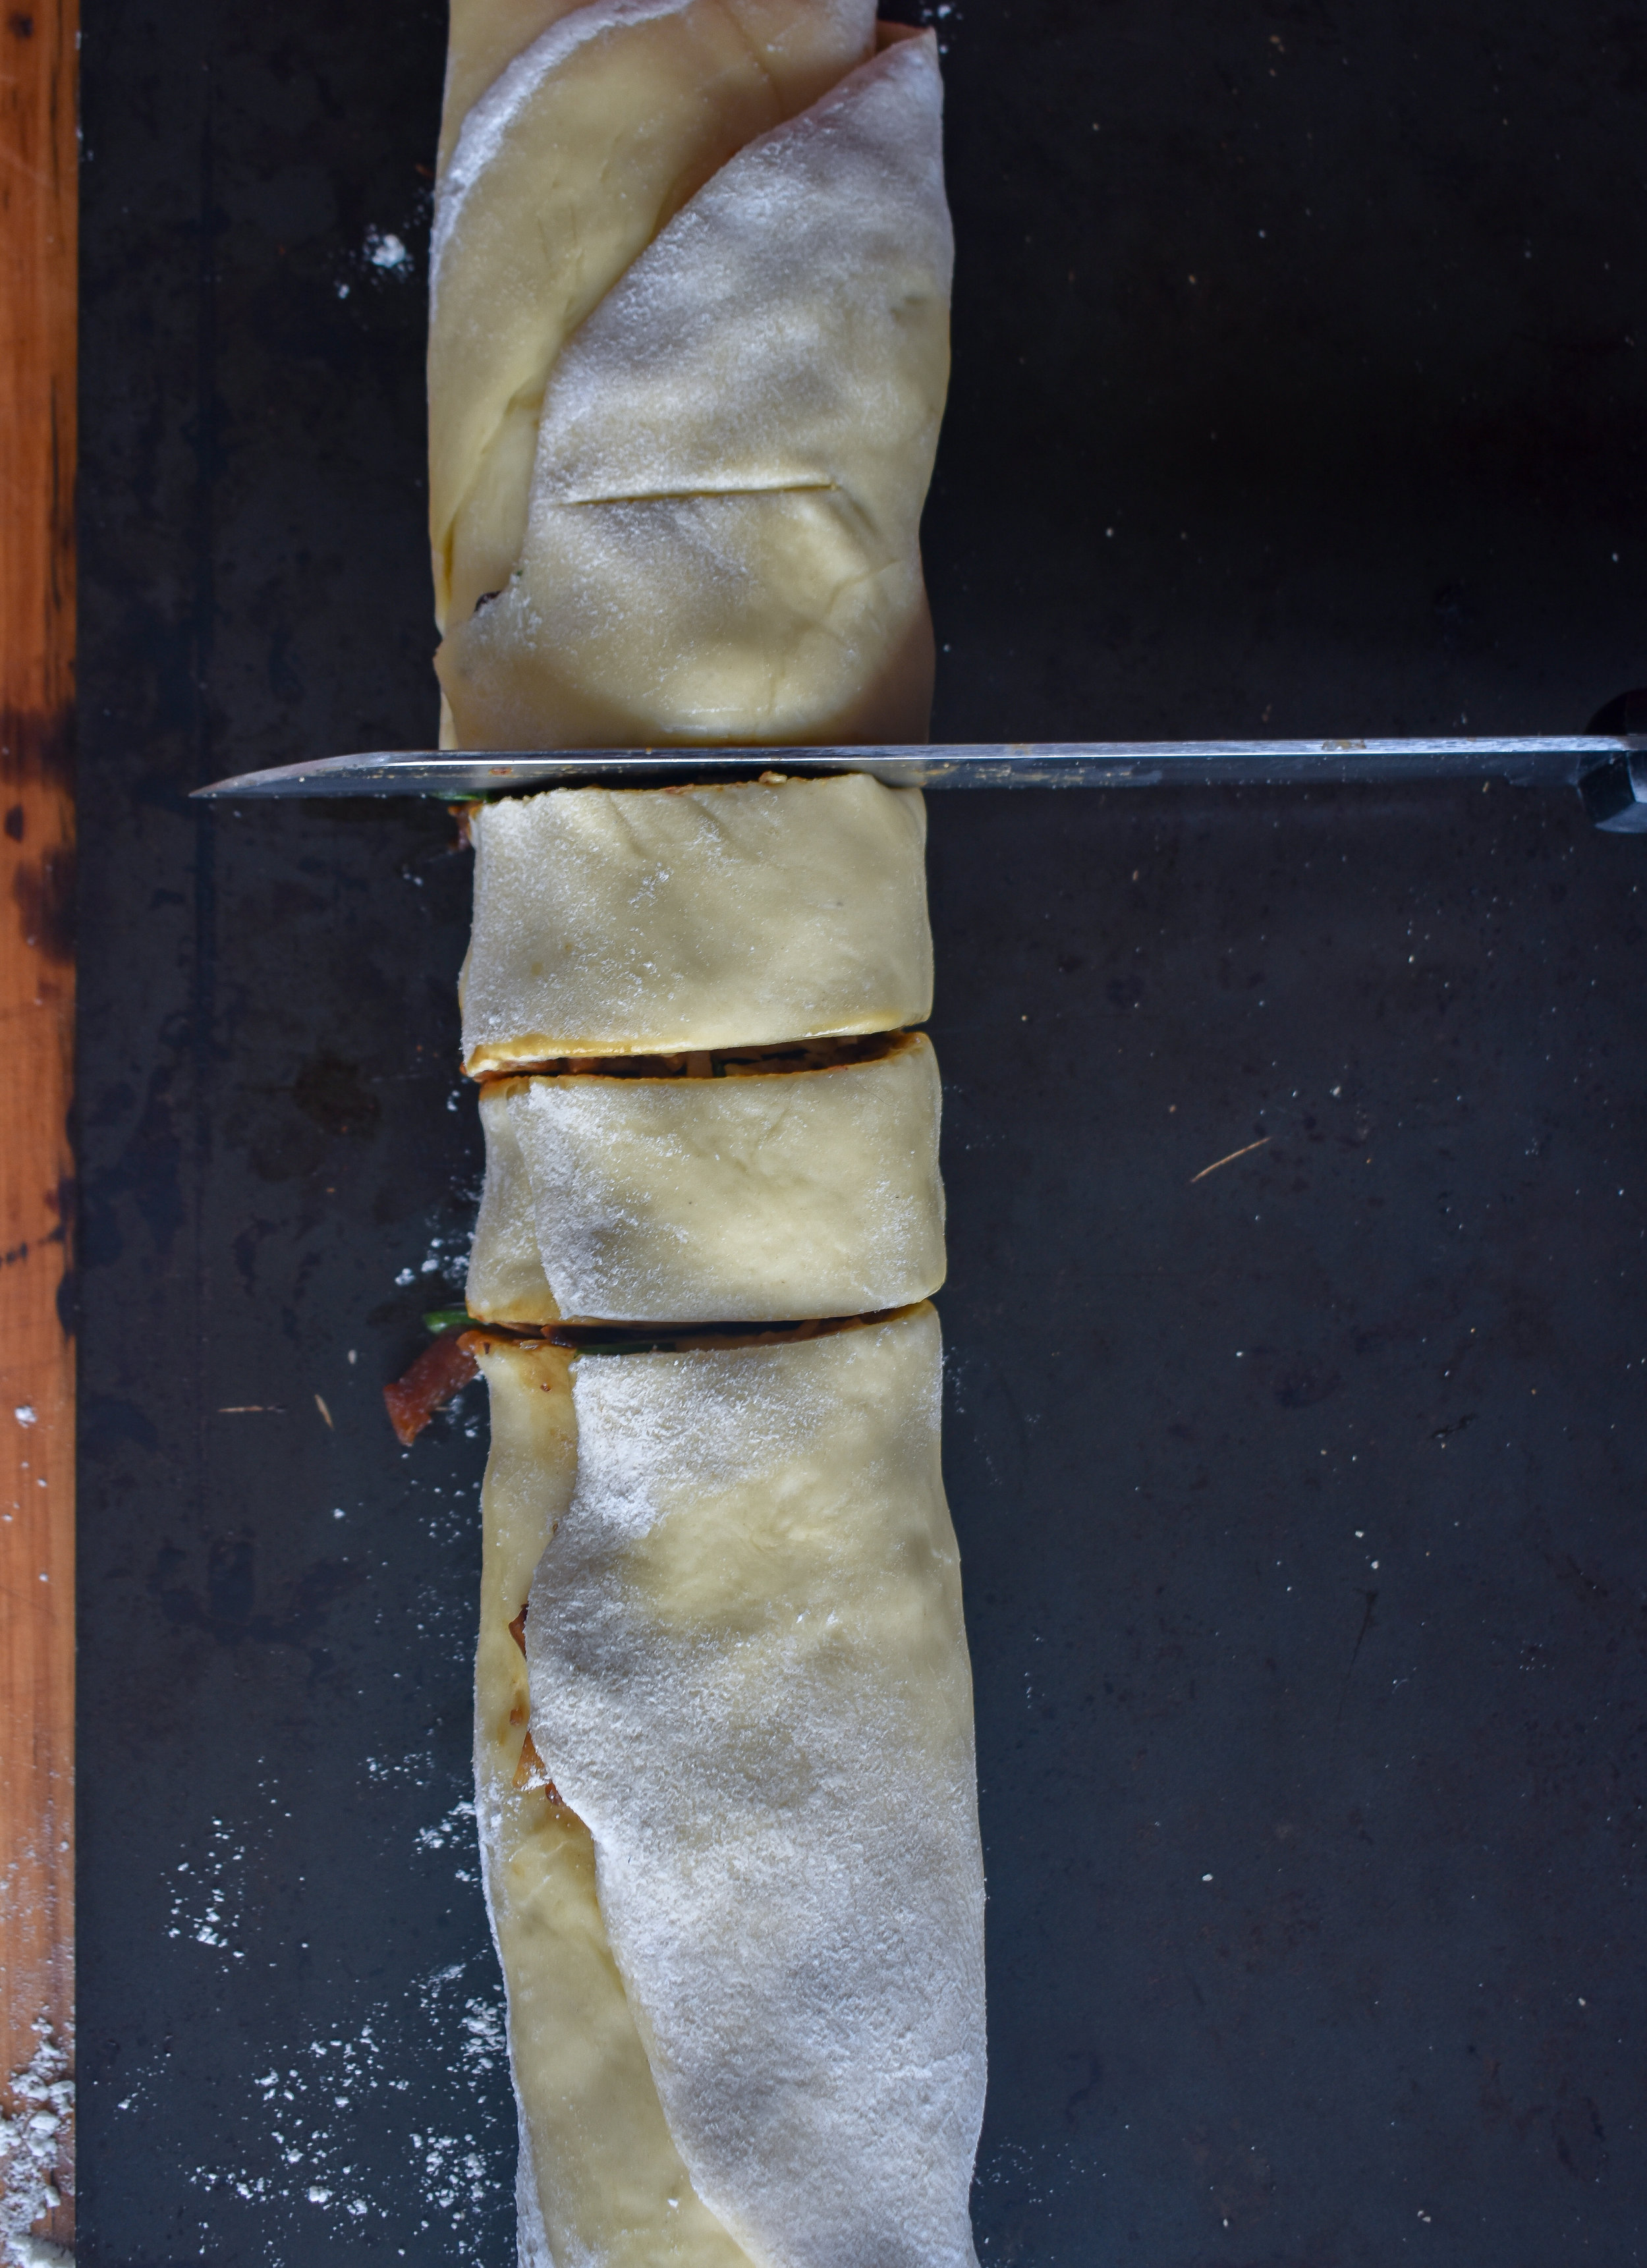 12. After pulling from the freezer, cut into 1-1.5 inch segments. I prefer a bread or serrated knife that saws rather than pushes down. You want the dough's integrity to stay firm. If you are cutting down and the edges are dropping in, you'll want to freeze longer or switch knives.